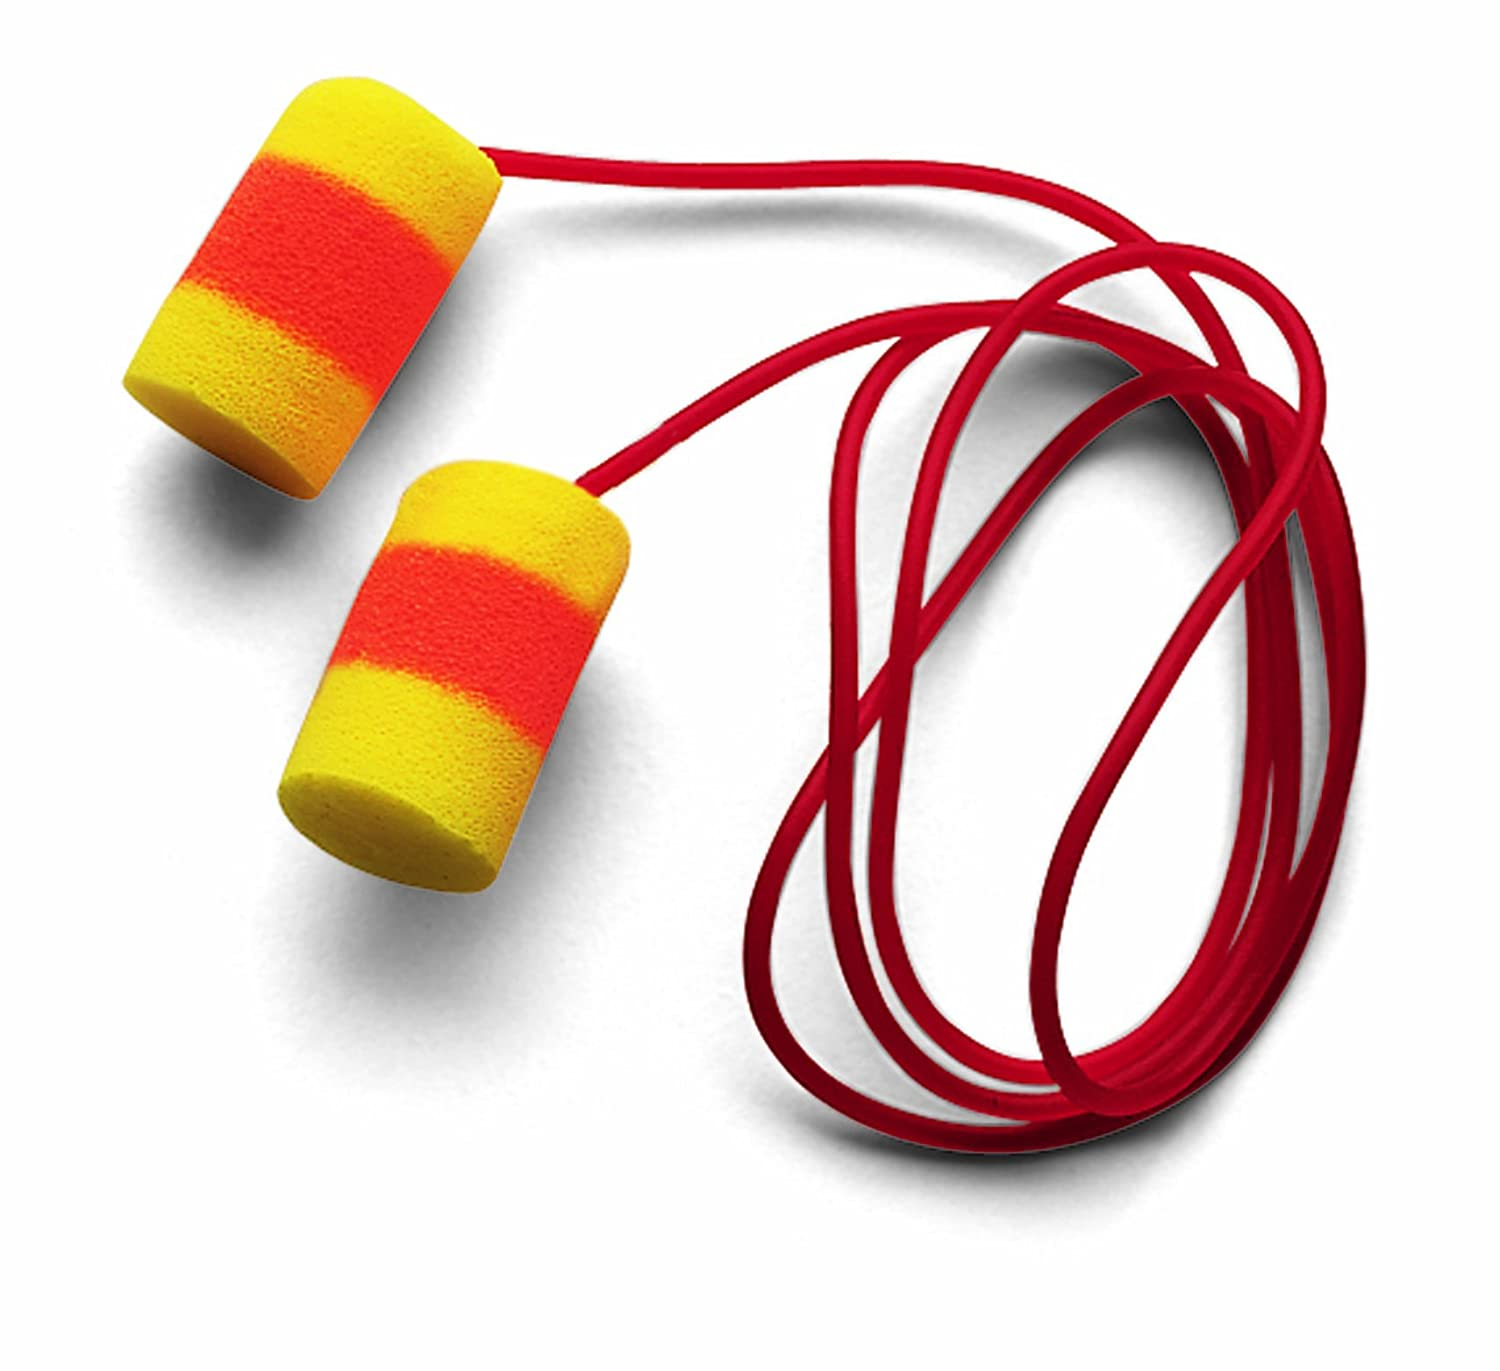 3M E-A-R Classic SuperFit 33 Corded Earplugs 311-1125, in Poly Bag by 3M B008MCTWES